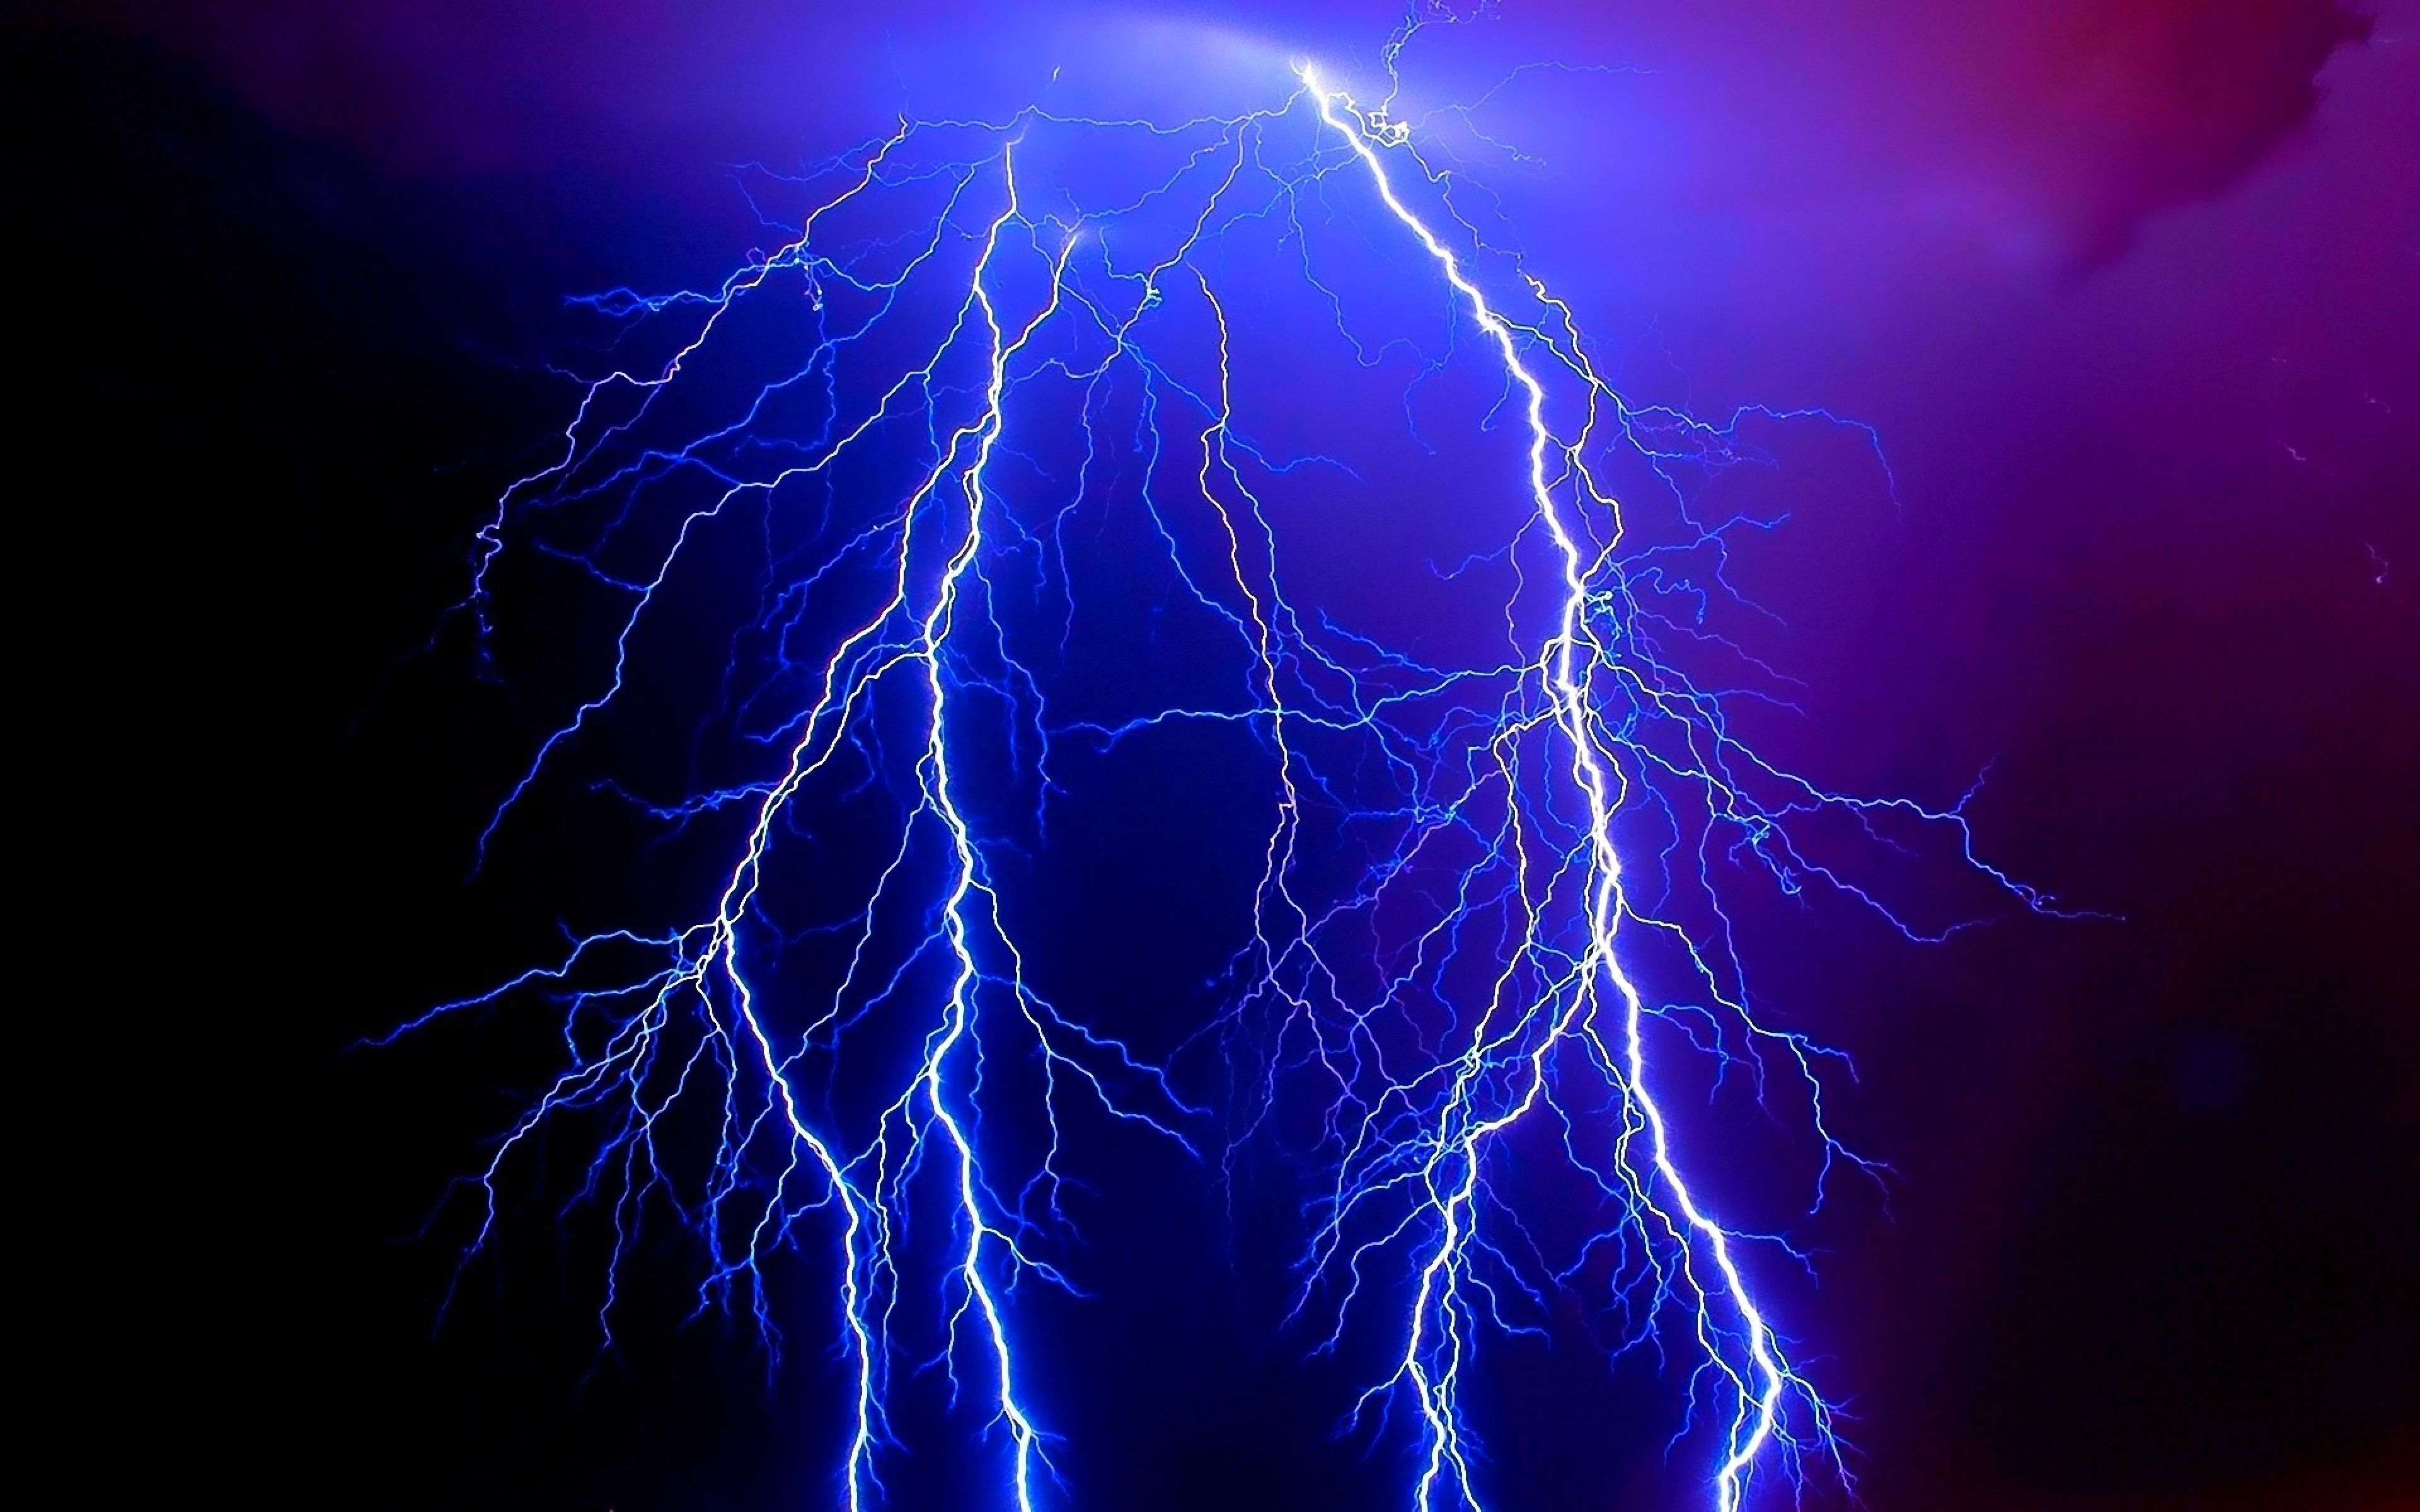 Lightning Wallpapers HD Android Apps on Google Play